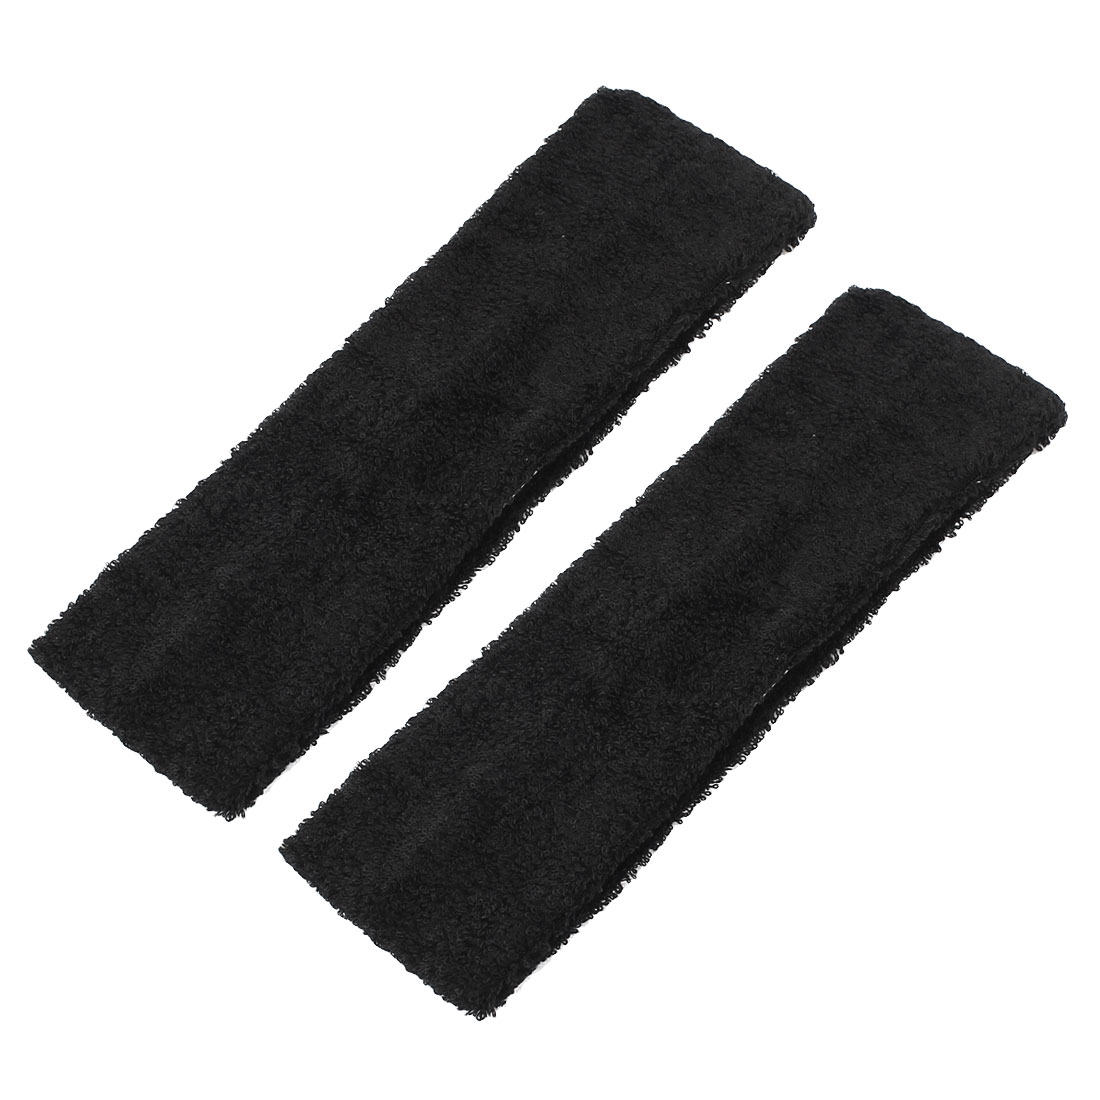 Women Sports Yoga Dancing Elastic Sweatband Headband Headwrap Hair Band Black 6cm 2pcs